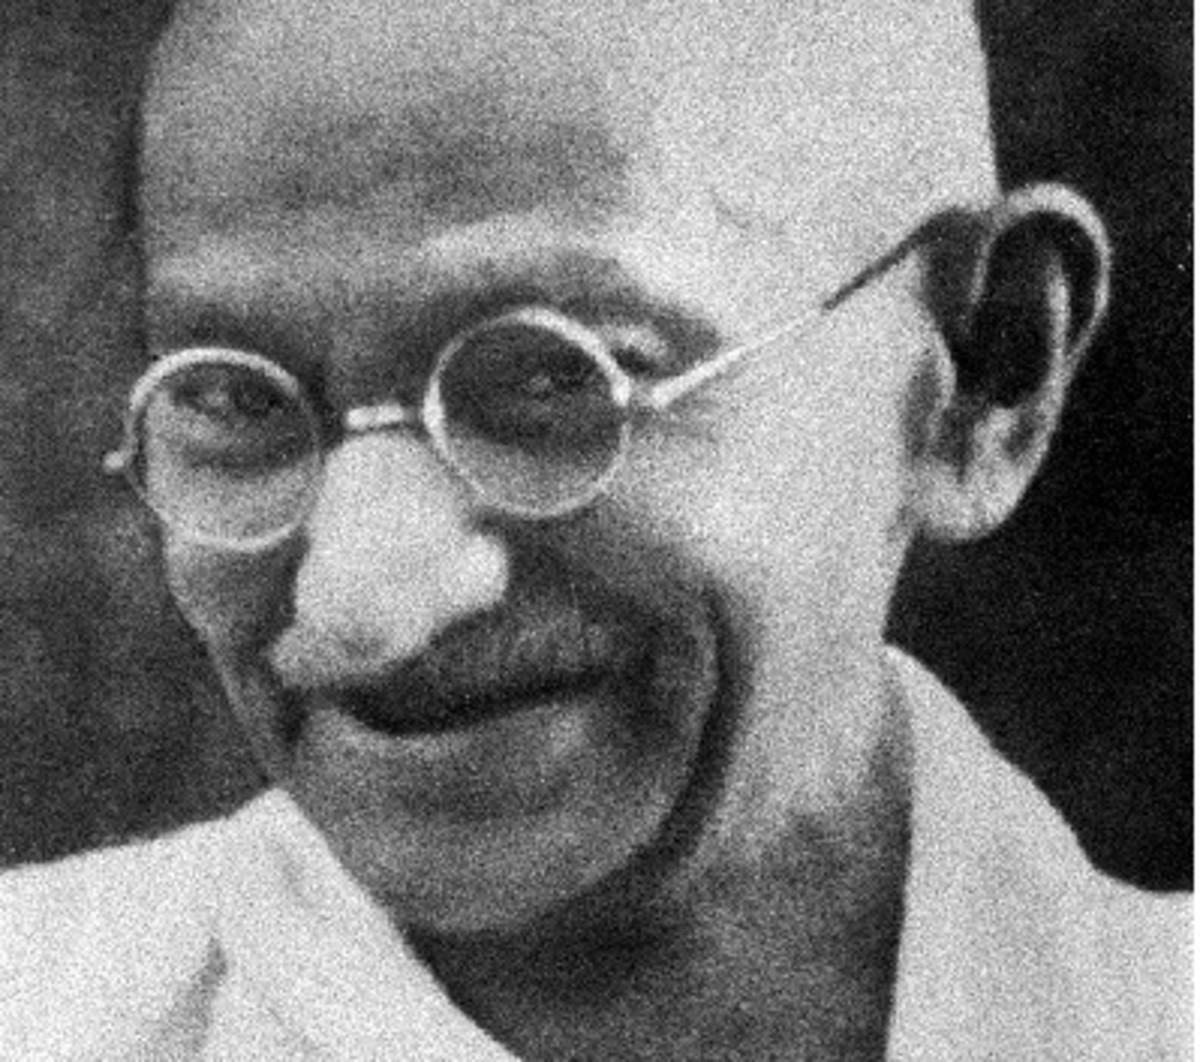 """Martin Luther King called Gandhi the greatest Christian of the modern world, even though Gandhi was a Hindu.  Gandhi said """"I like your Christ, I do not like your Christians.  Your Christians are so unlike your Christ."""""""